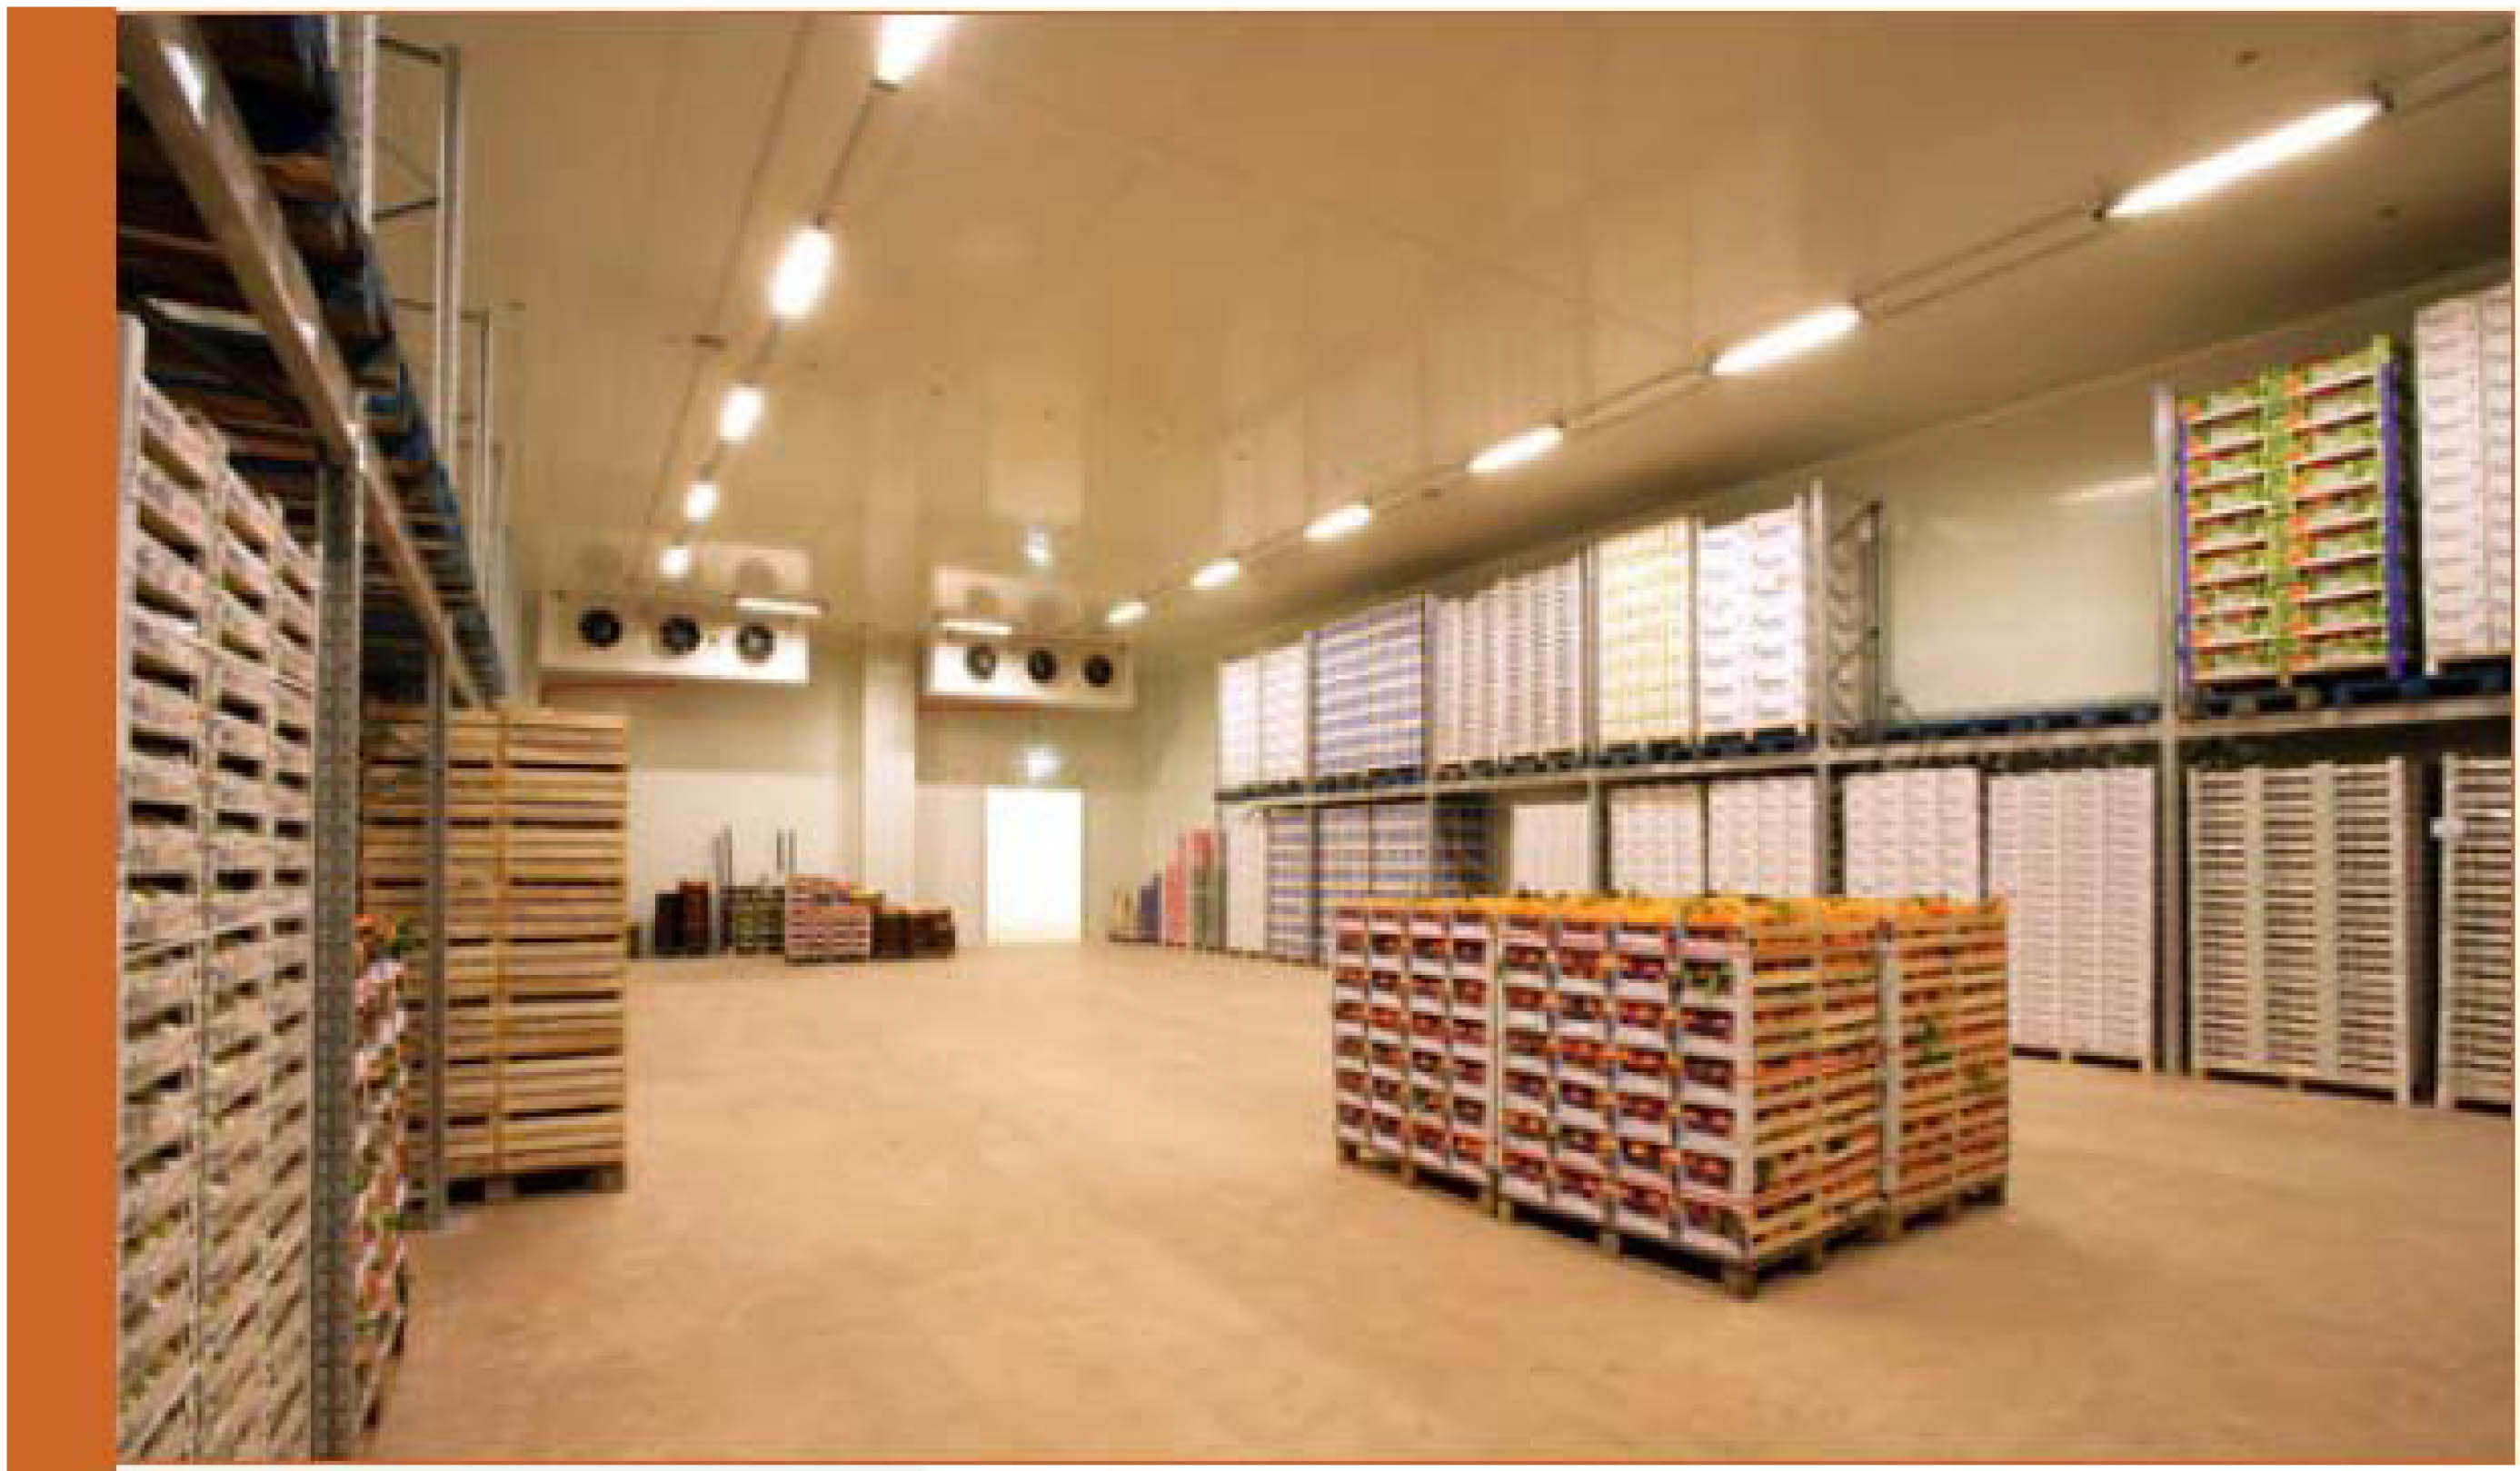 Chambre froide industrielle - Chambre froide industrielle ...